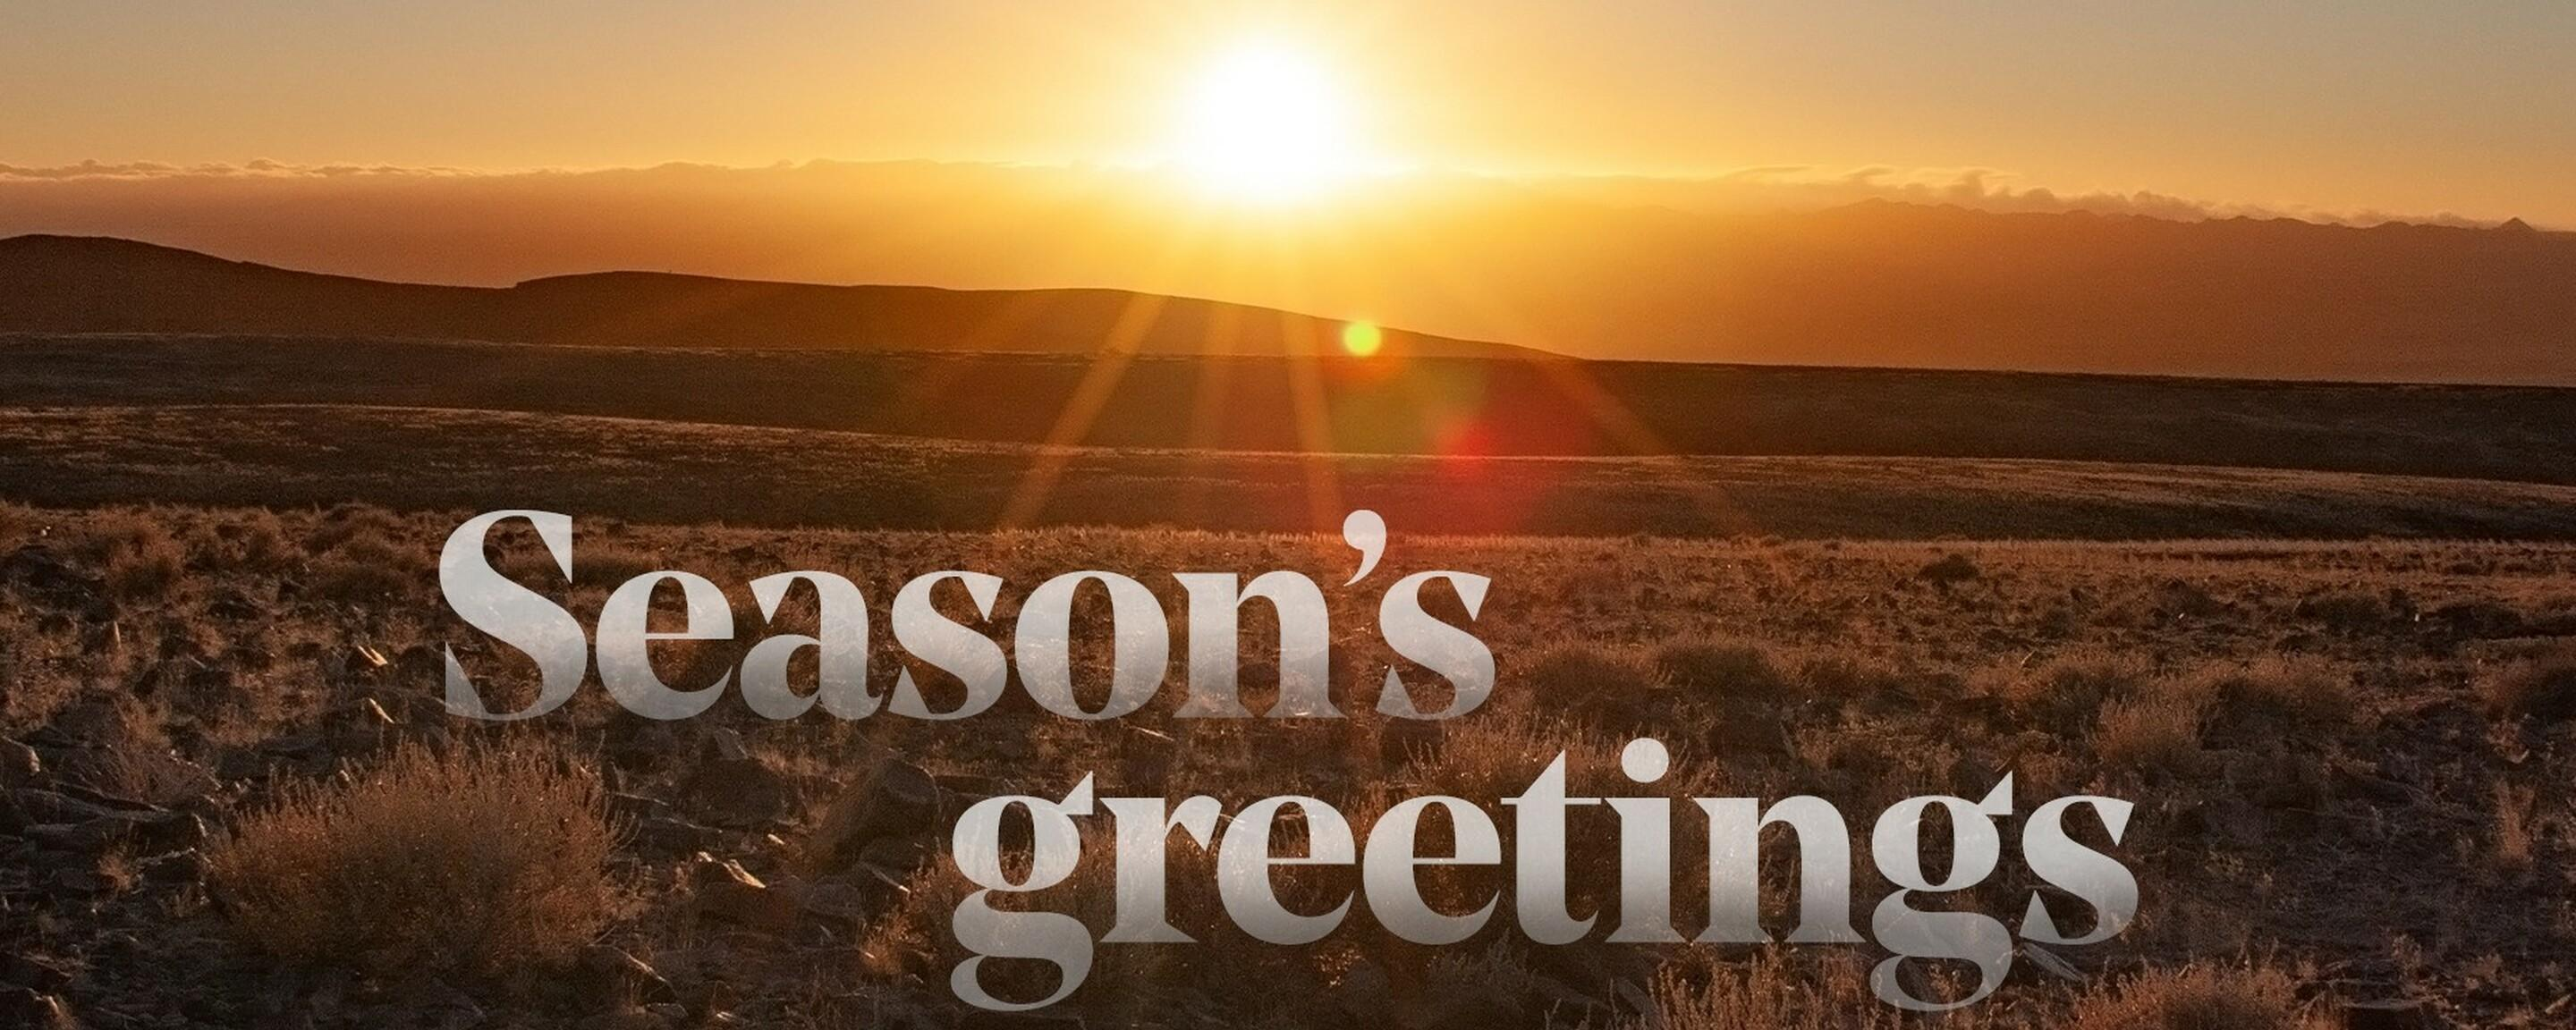 May the rising sun of the new year bring plenty of joy and togetherness